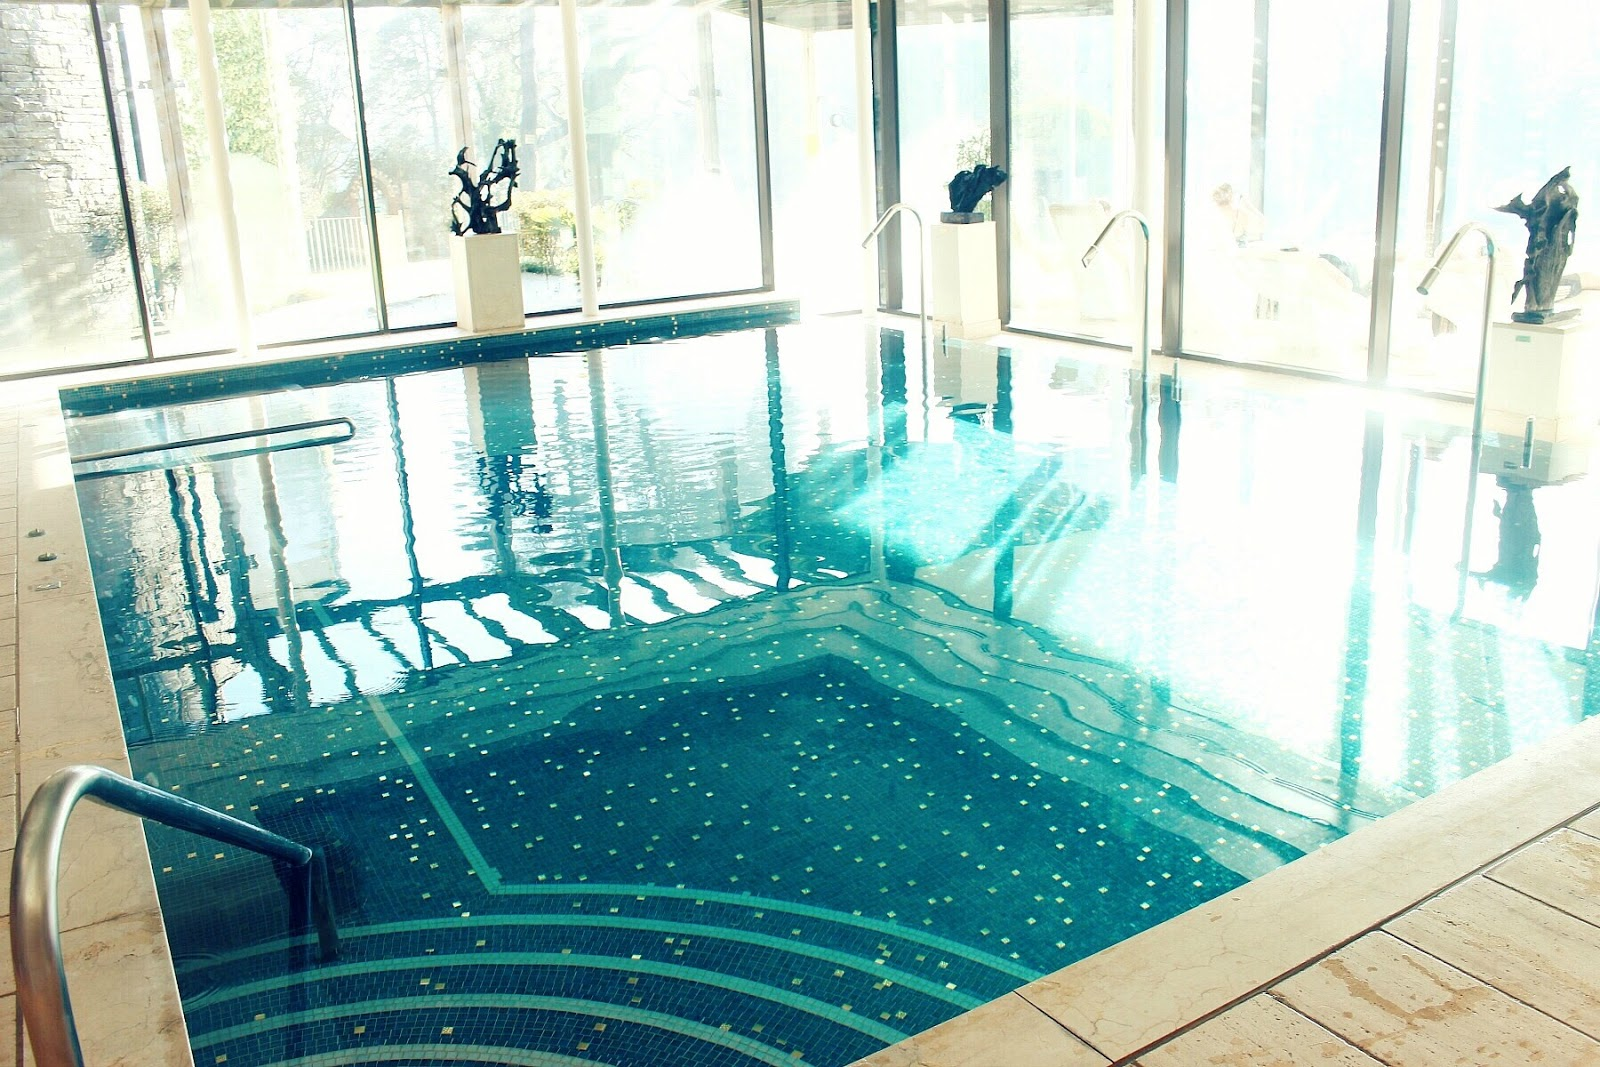 Galgorm resort and spa review, galgorm spa, galgorm jacuzzi, galgorm hot tub, galgorm thermal village, galgorm hydrotherapy pool